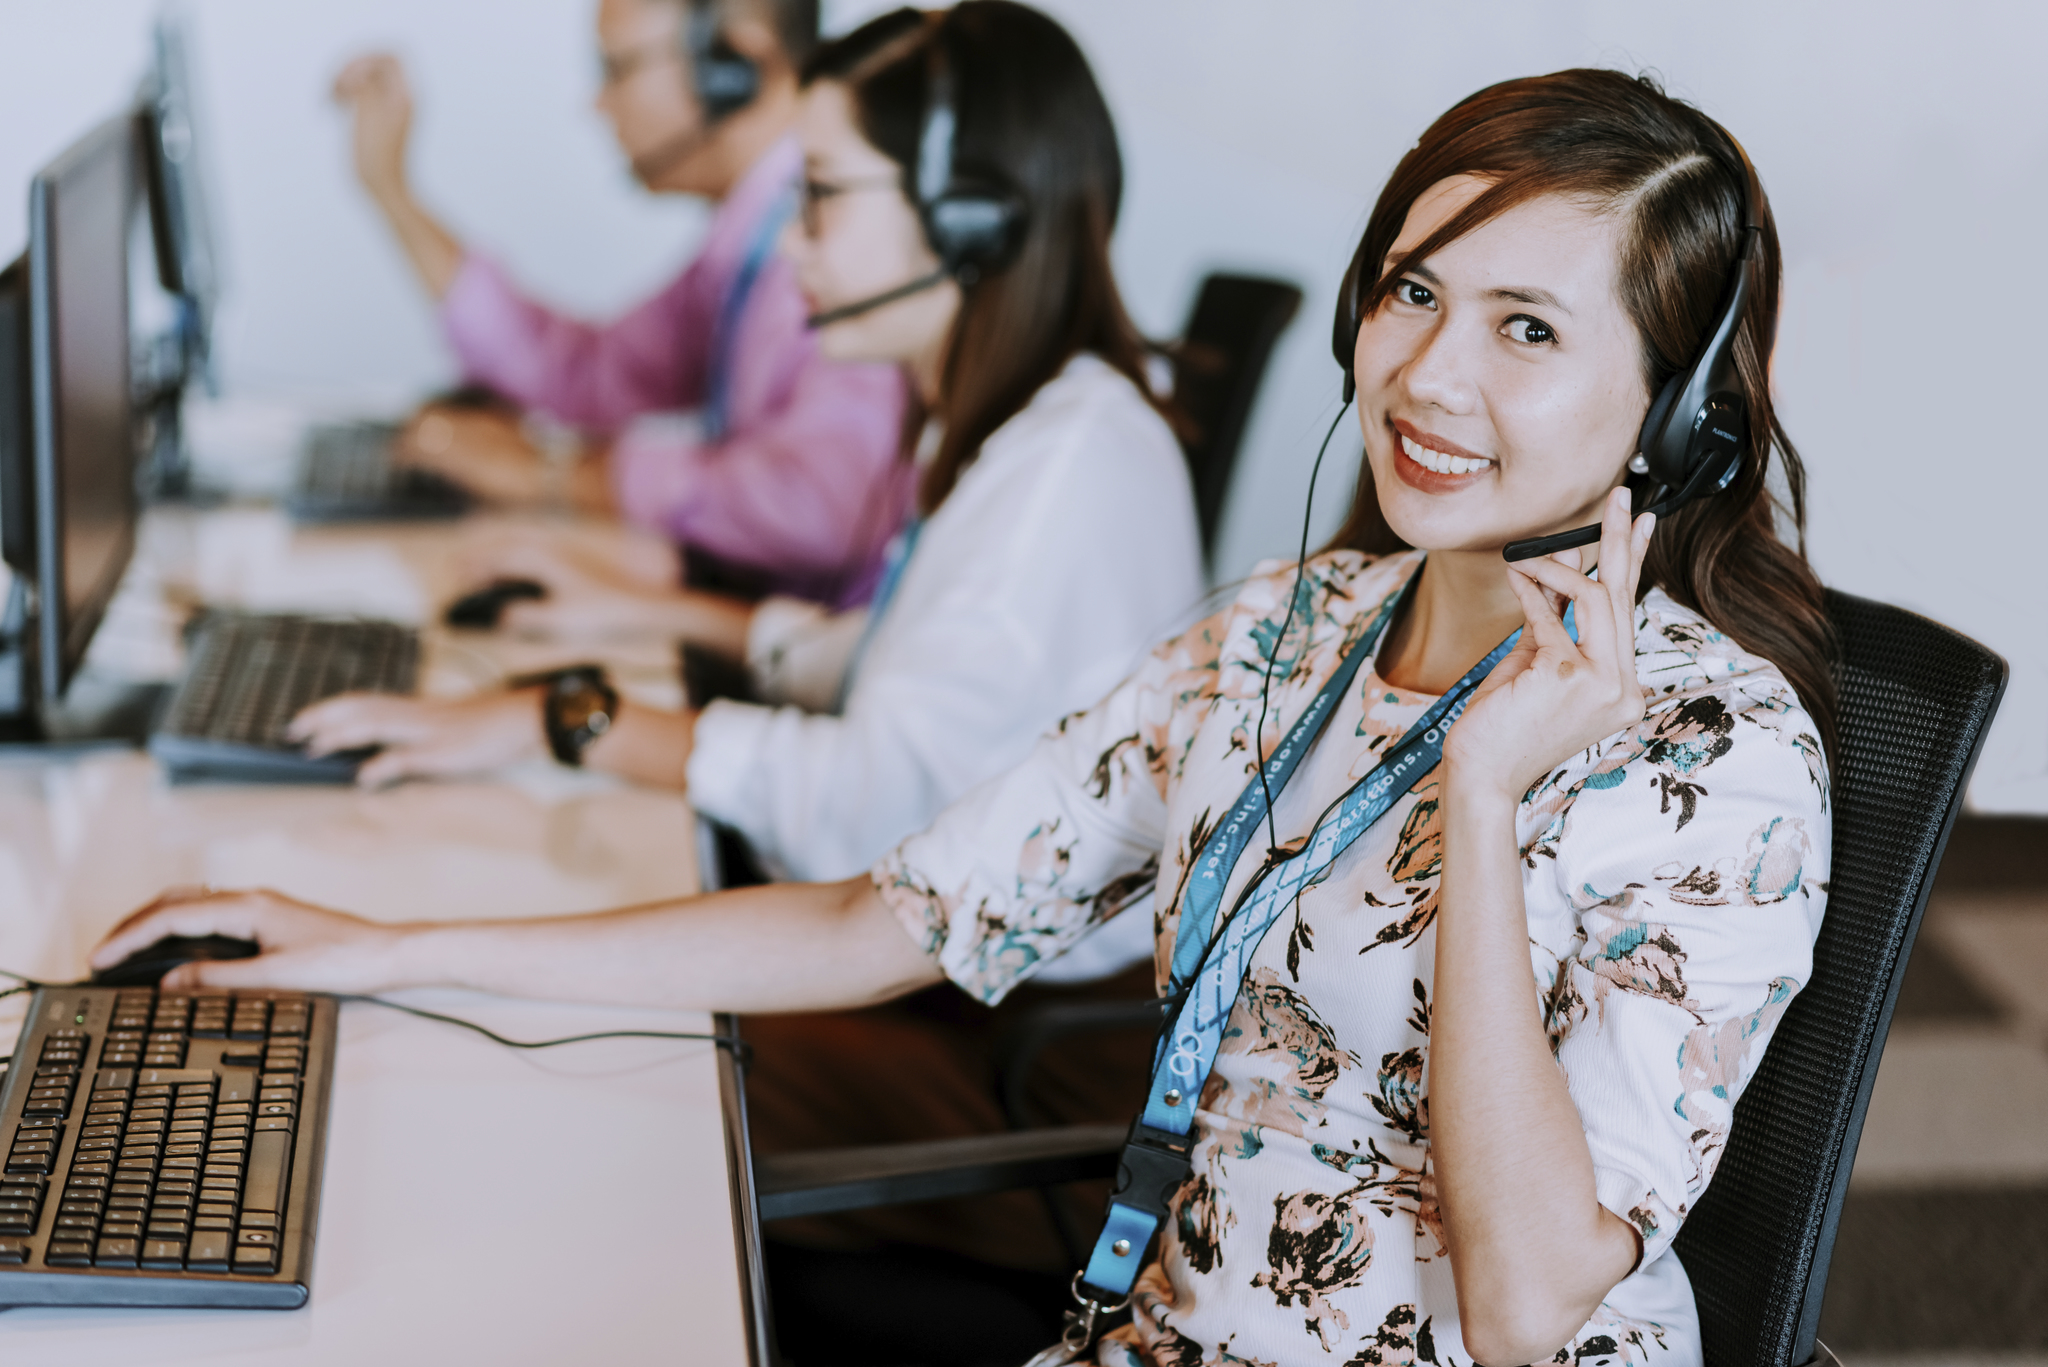 Smiling Female call center agent holding her headset with a headset